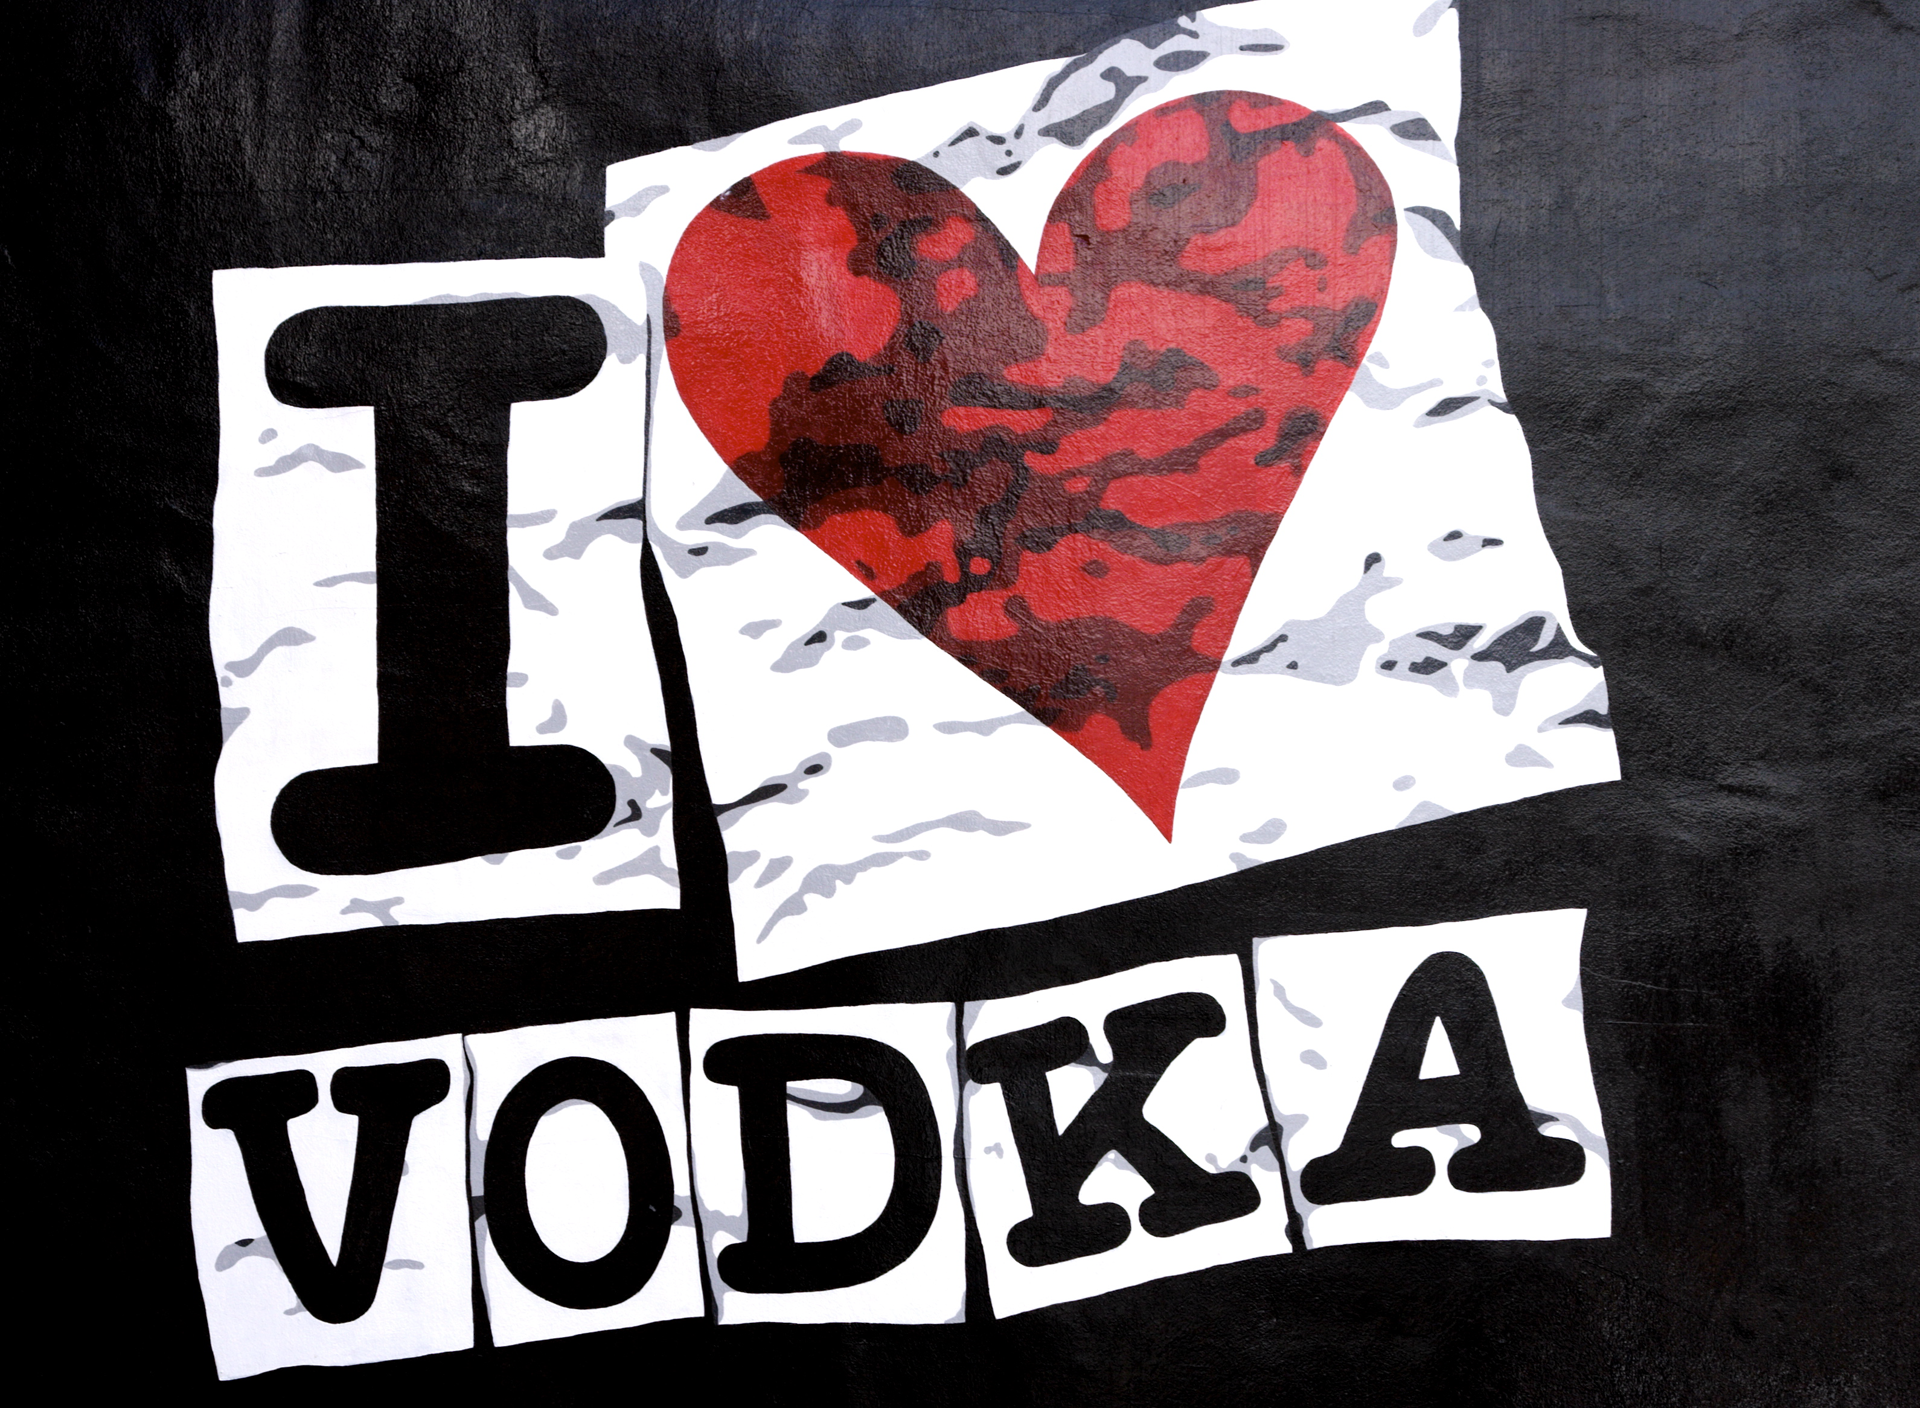 Vodka Wallpapers, 06.03.16 3532.01 Kb